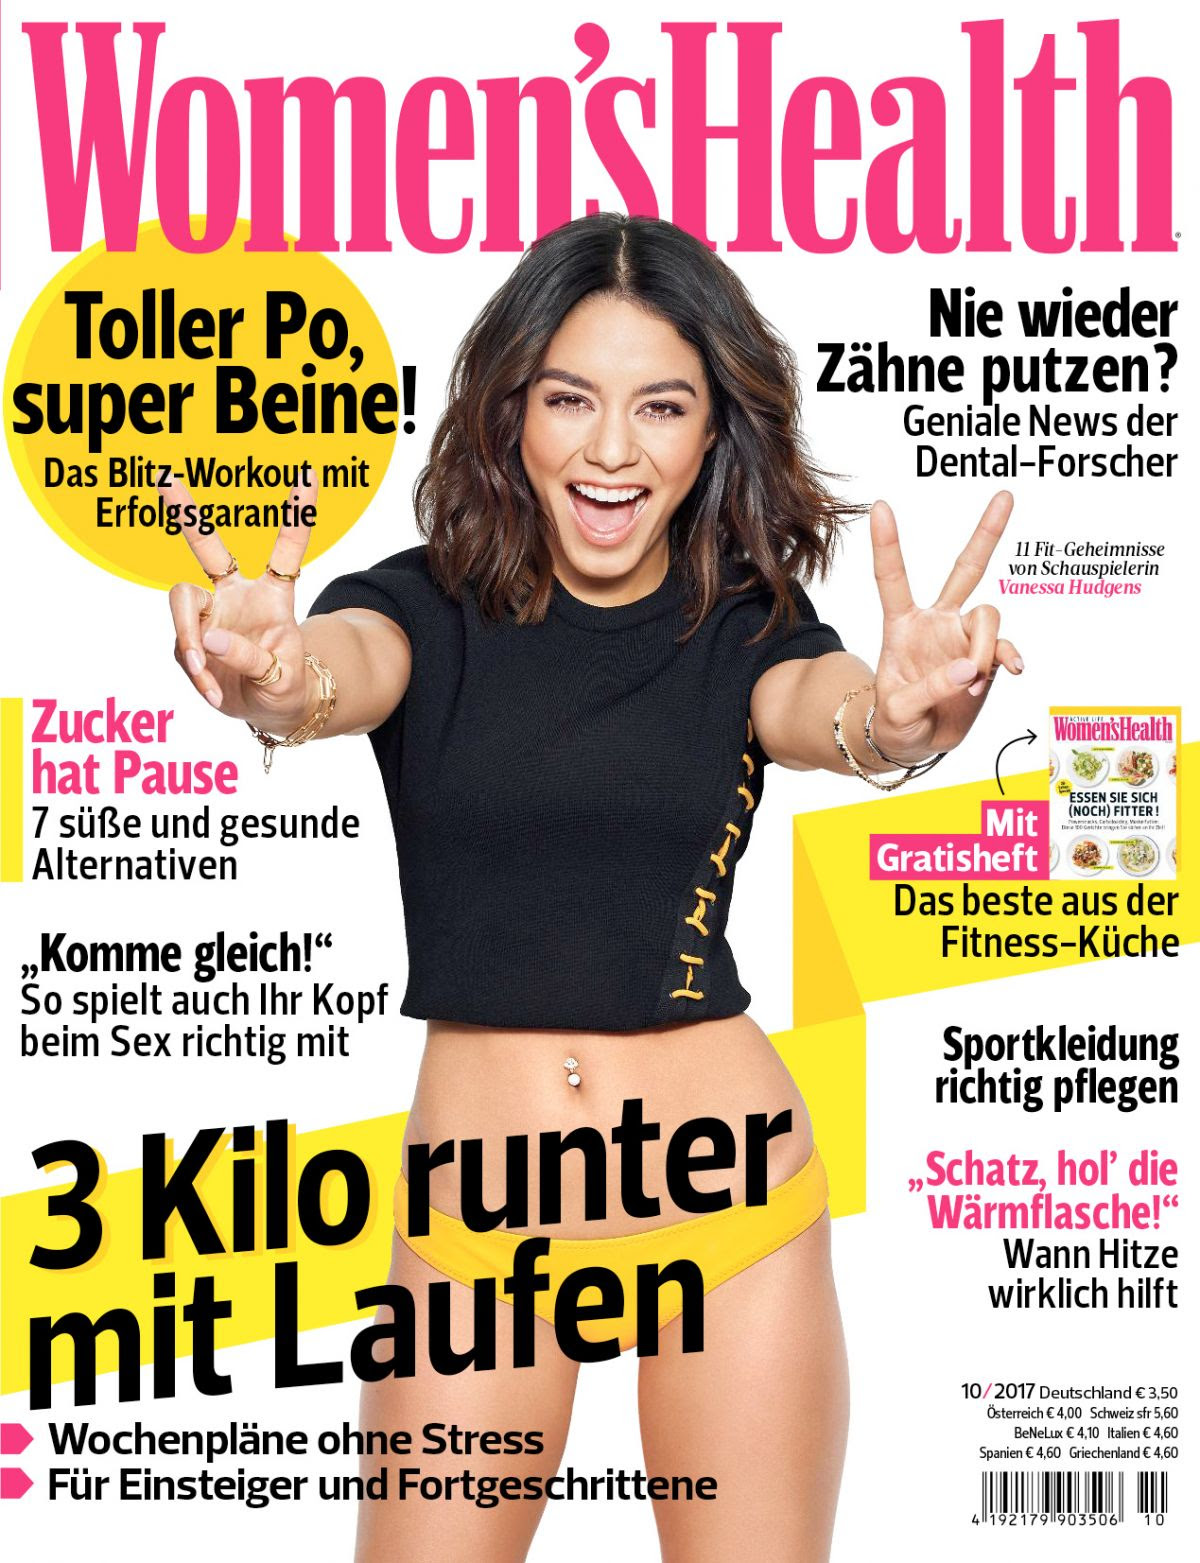 VANESSA HUDGENS in Women's Health Magazine, Germany Oktober 2017